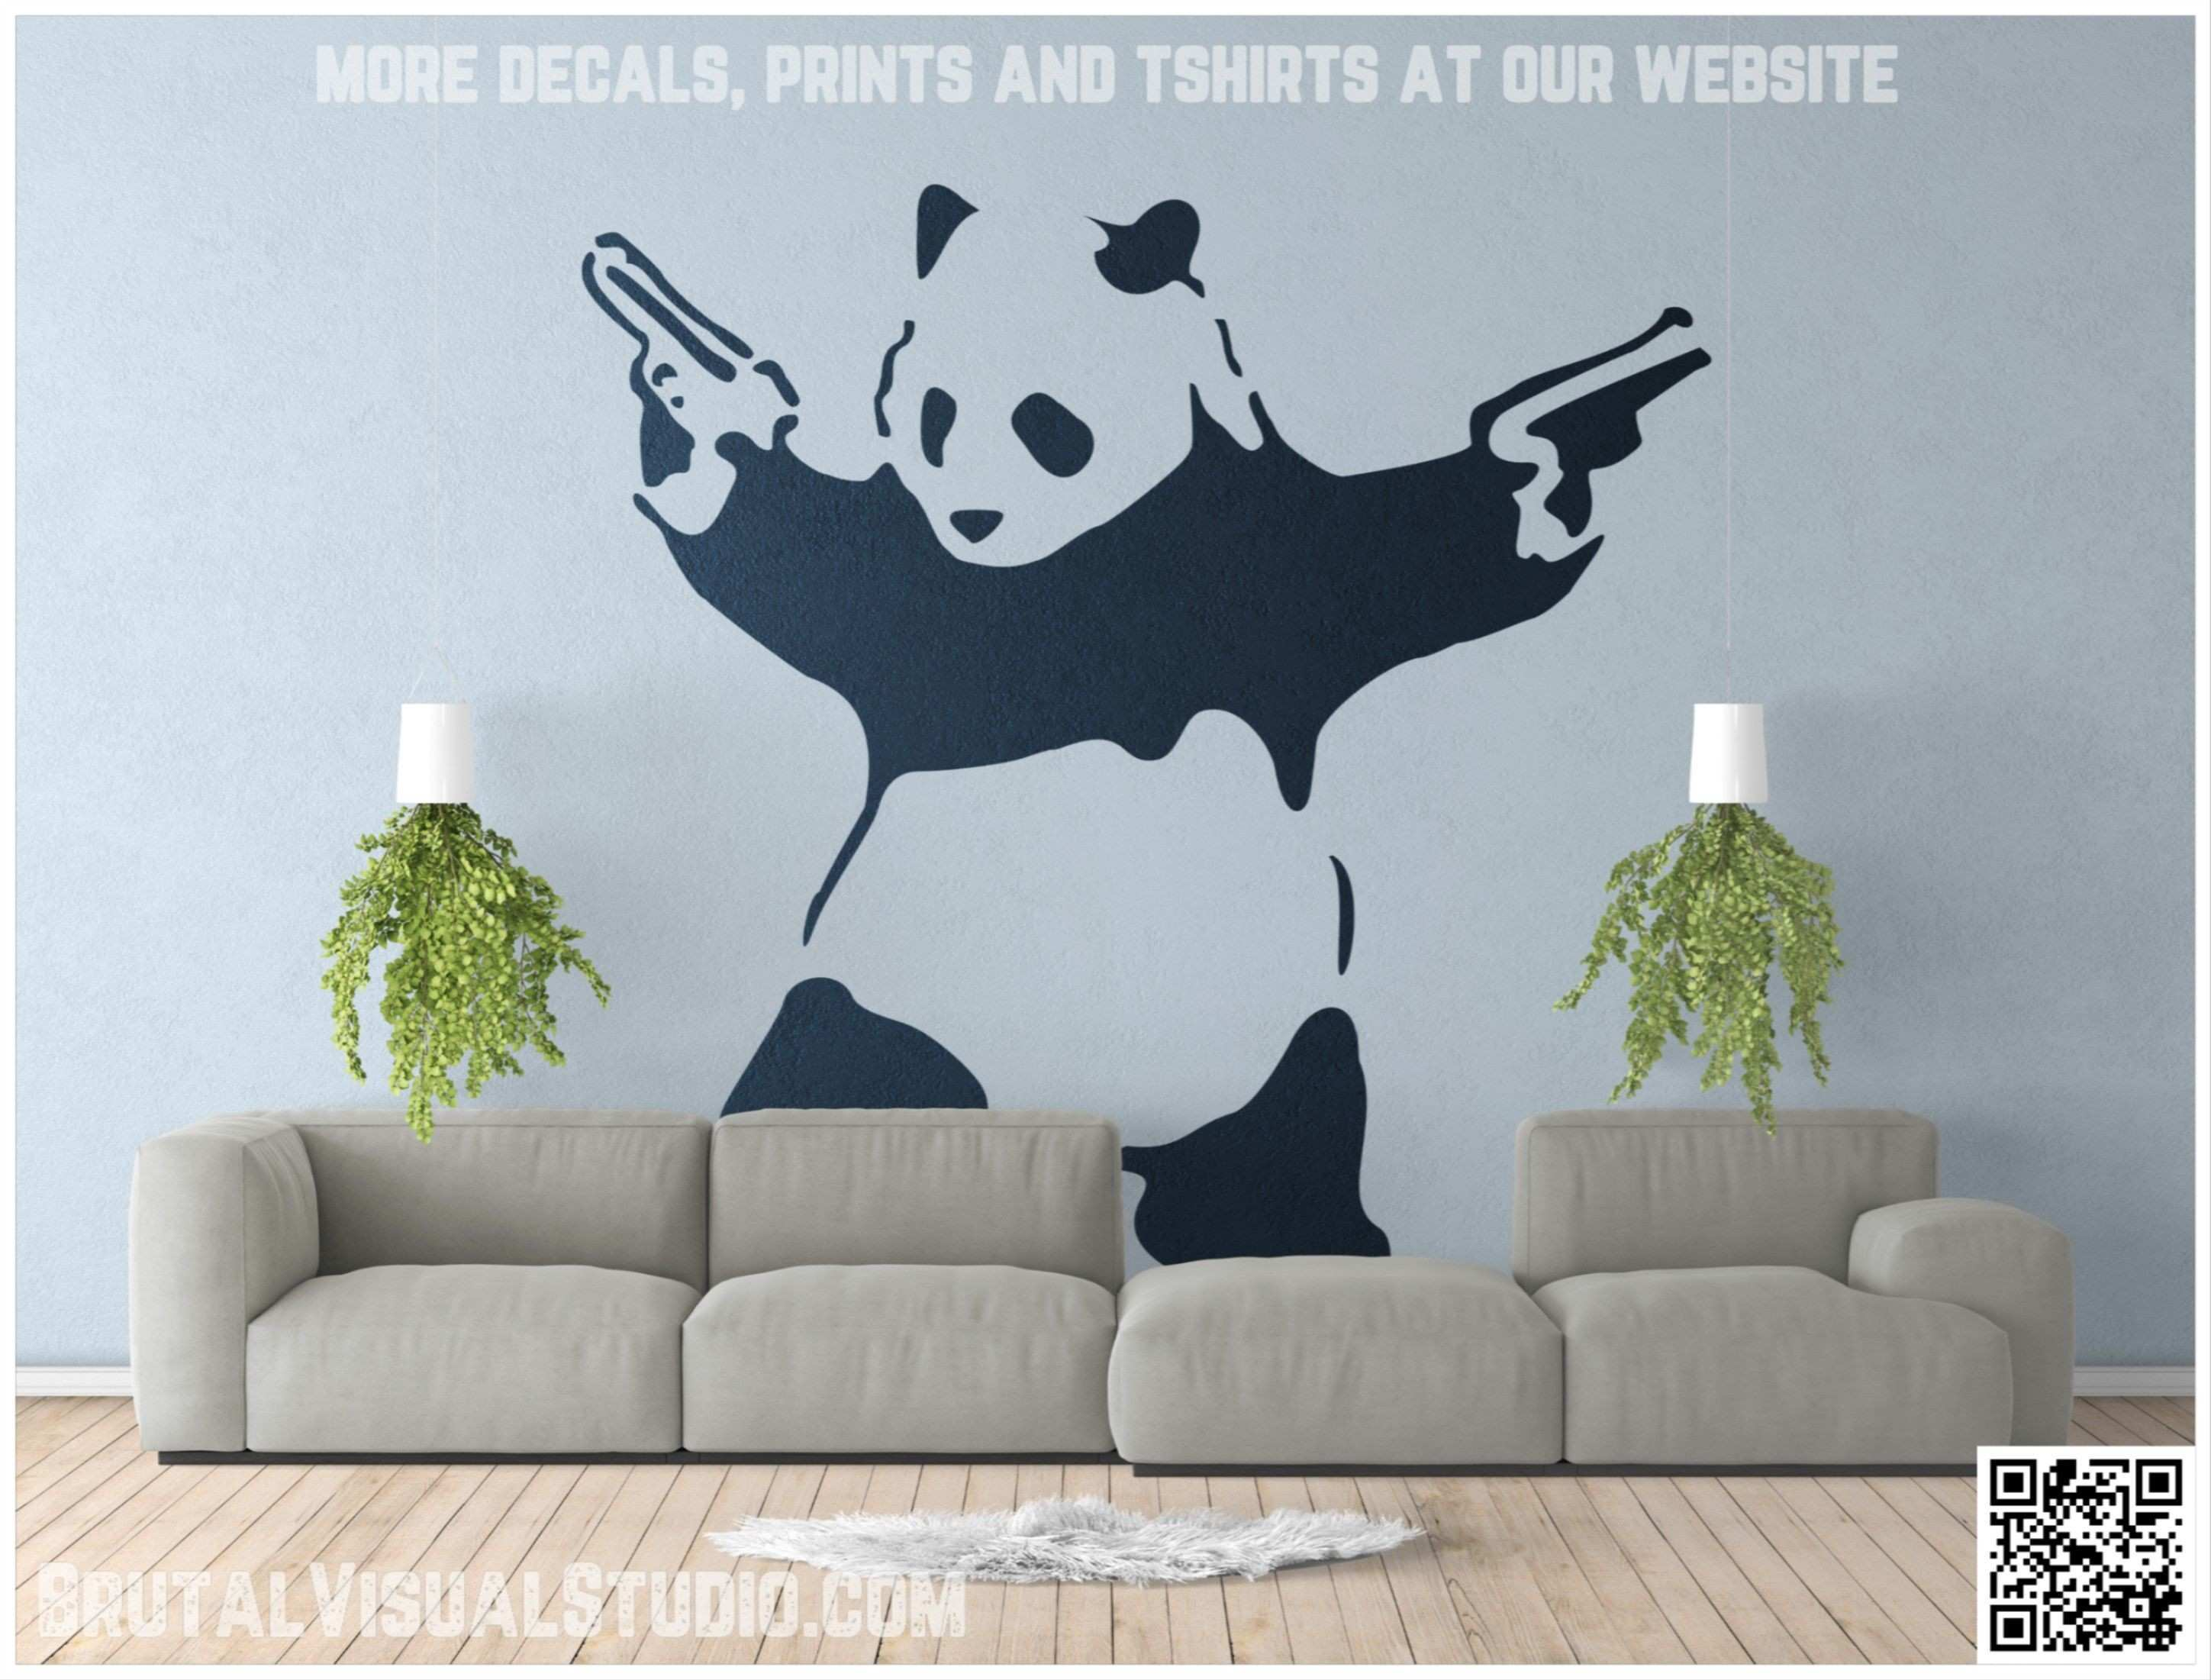 This image is about Banksy style bad pand with guns You can